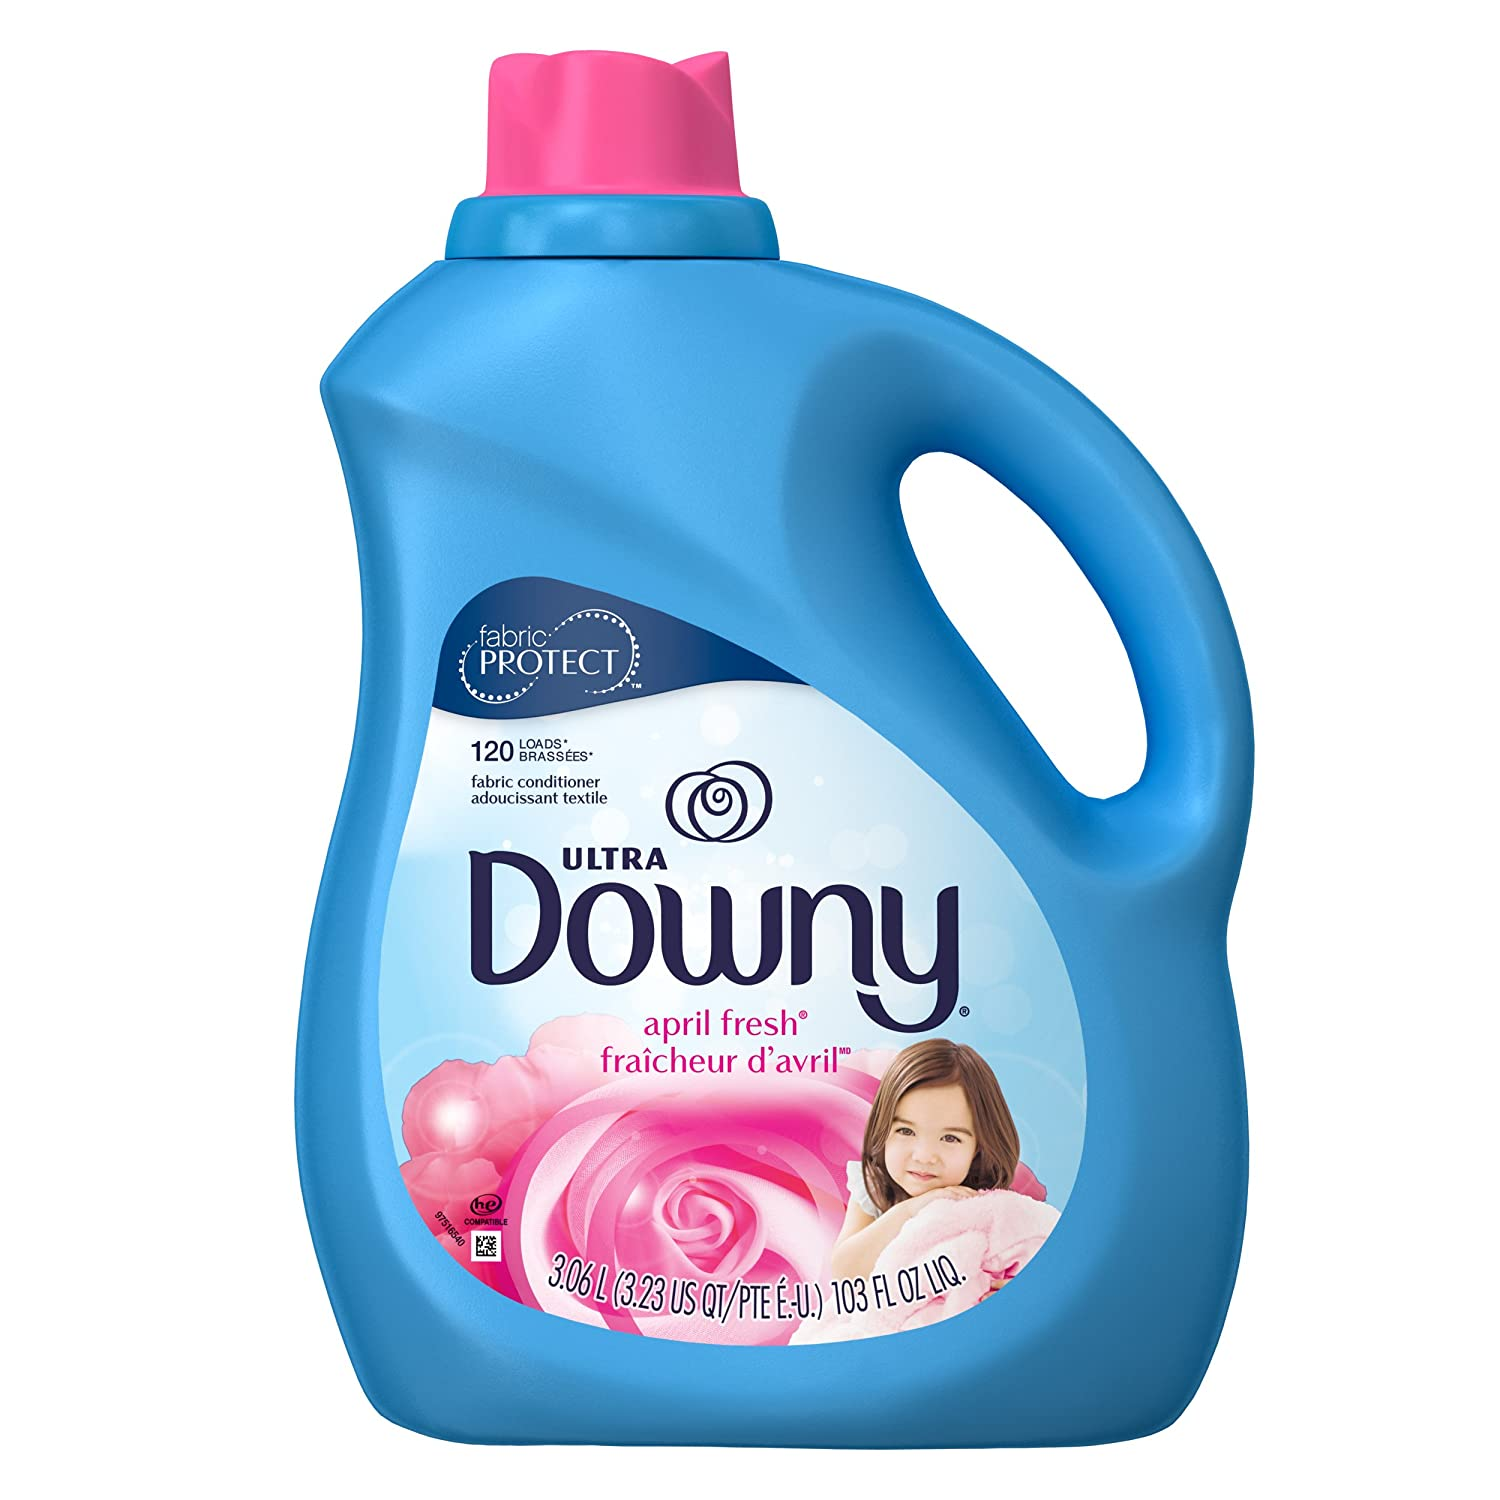 ultra downy april fresh liquid fabric softener and conditioner 103 fl oz ebay. Black Bedroom Furniture Sets. Home Design Ideas